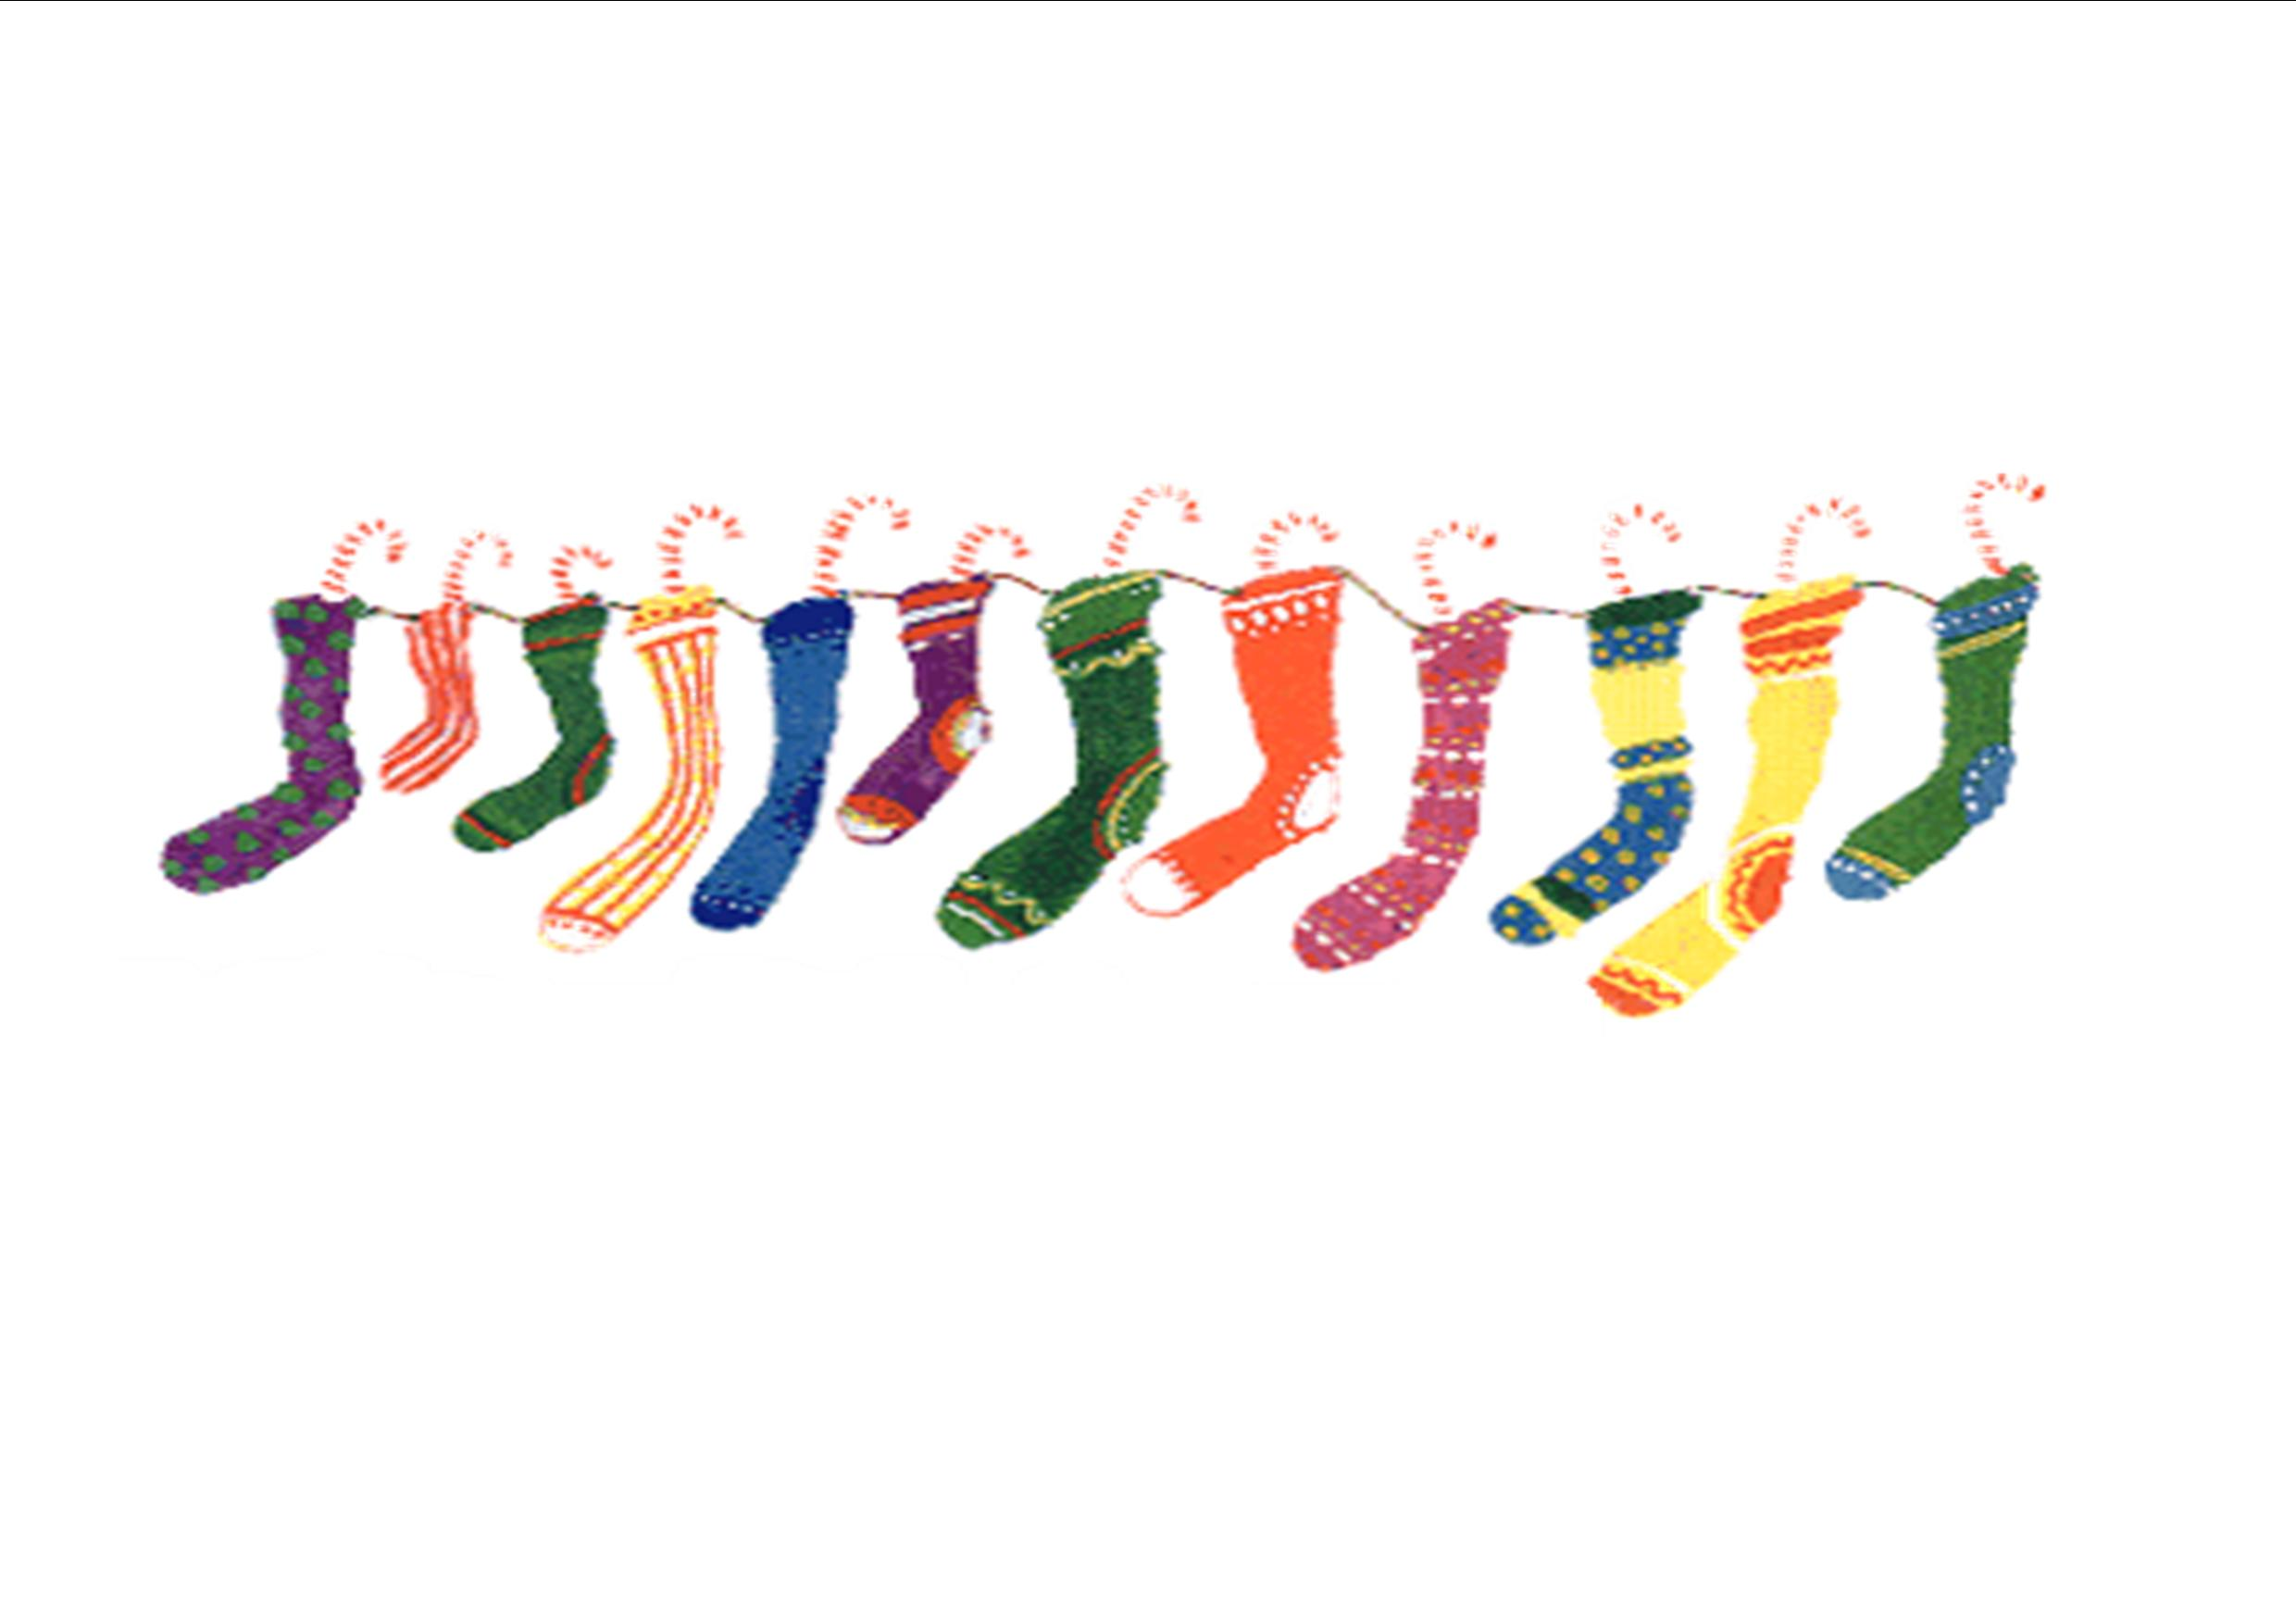 3rd annual clements sock drive clements centre society lunch clip art free images lunch clip art cute